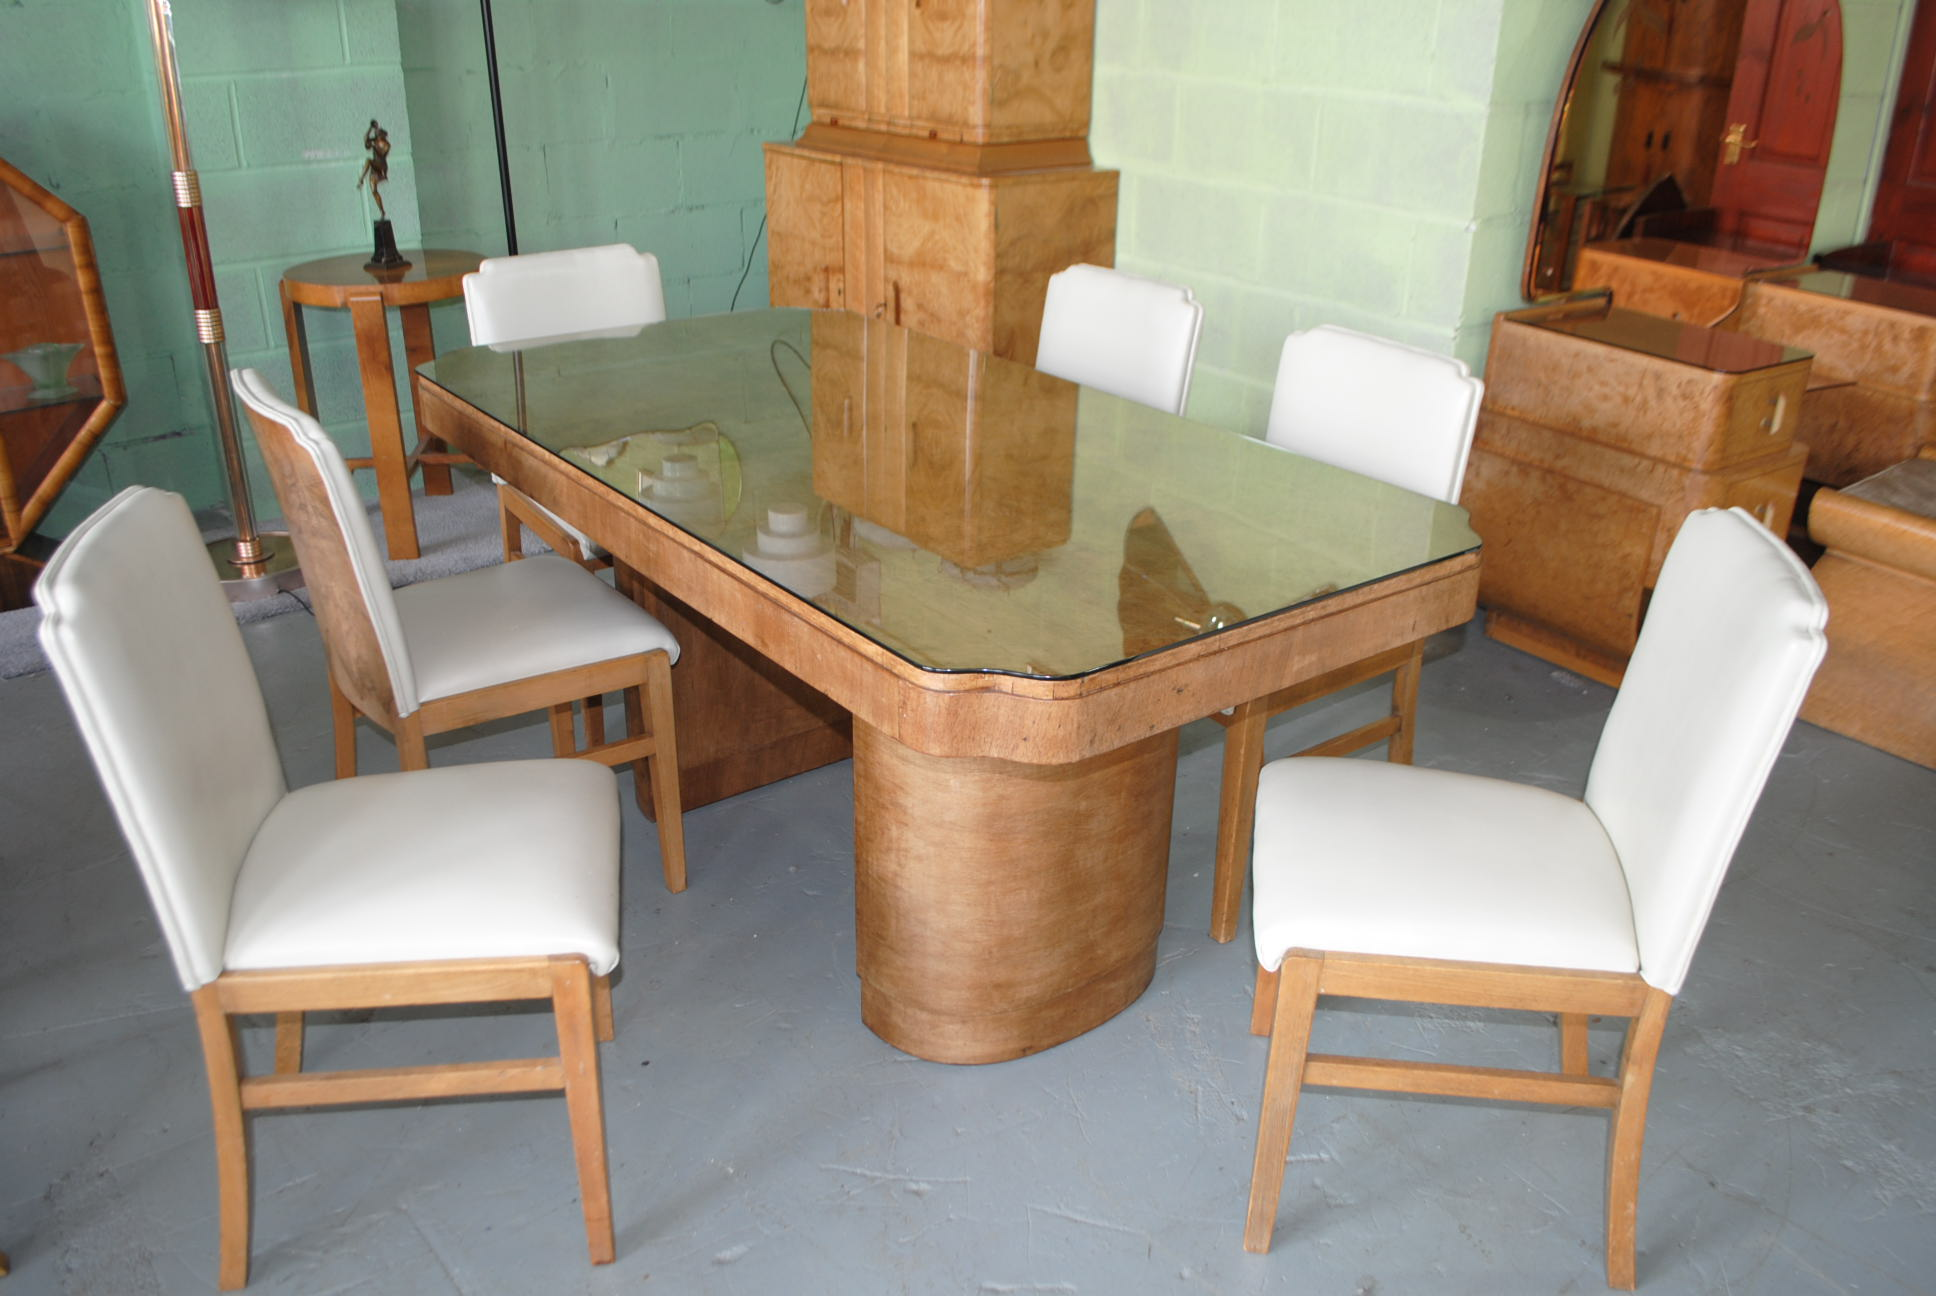 Art deco epstein dining table and 6 chairs cloud 9 art deco furniture sales - Epstein art deco furniture ...